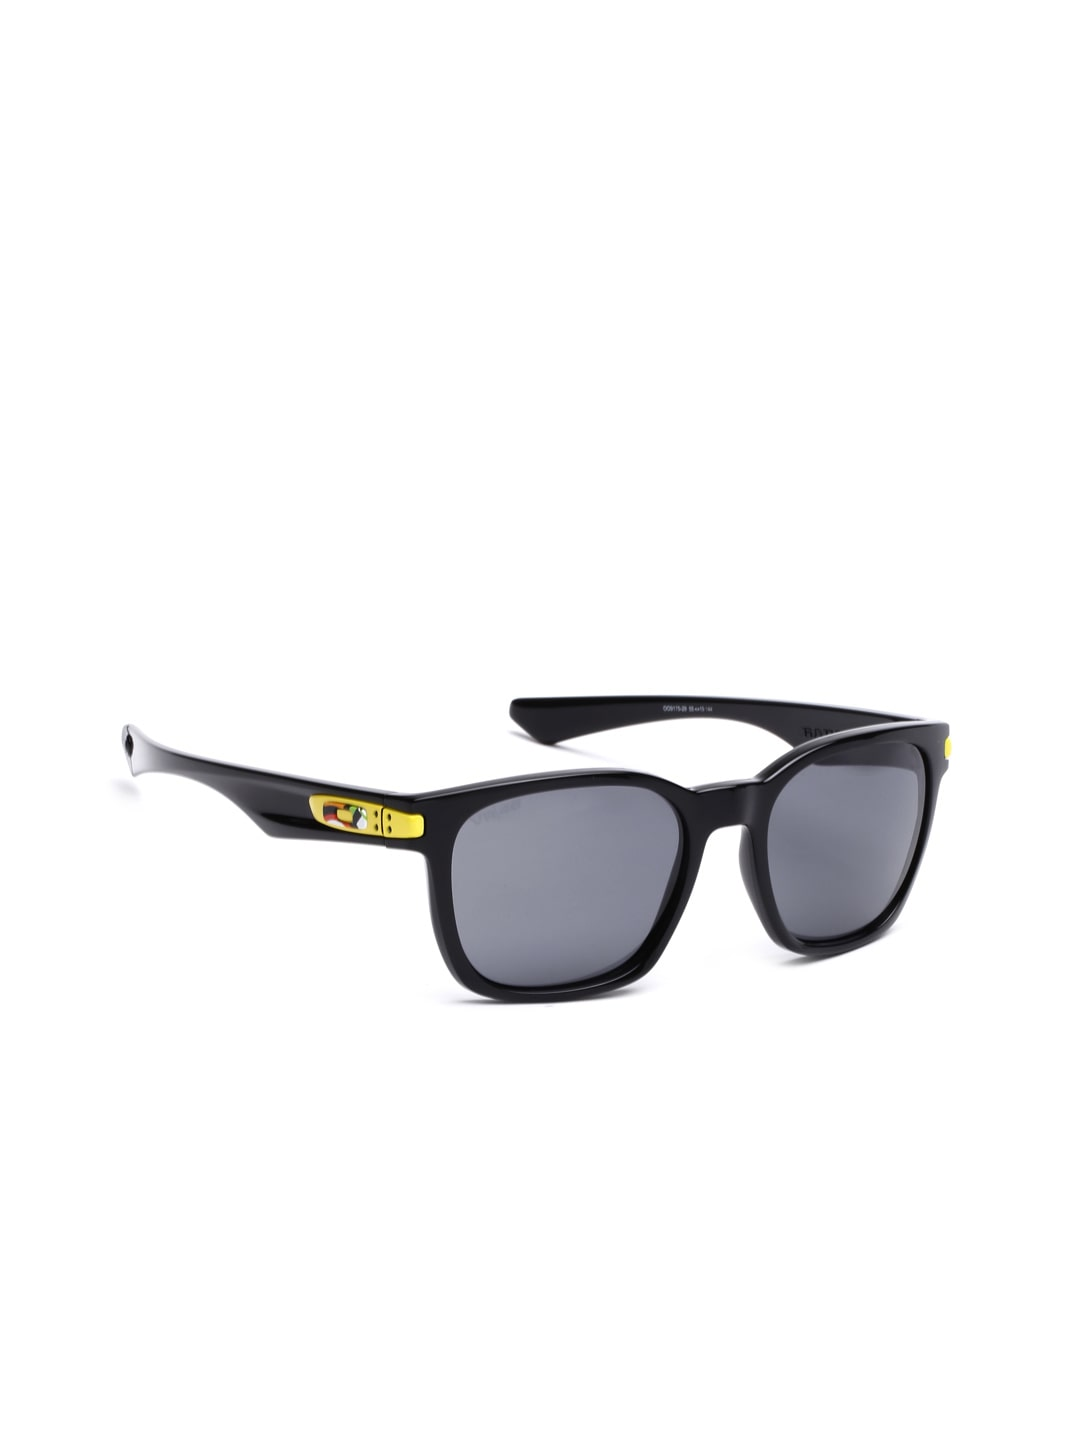 dda29f98b0 Oakley Sunglasses For Cheap Prices In India « Heritage Malta